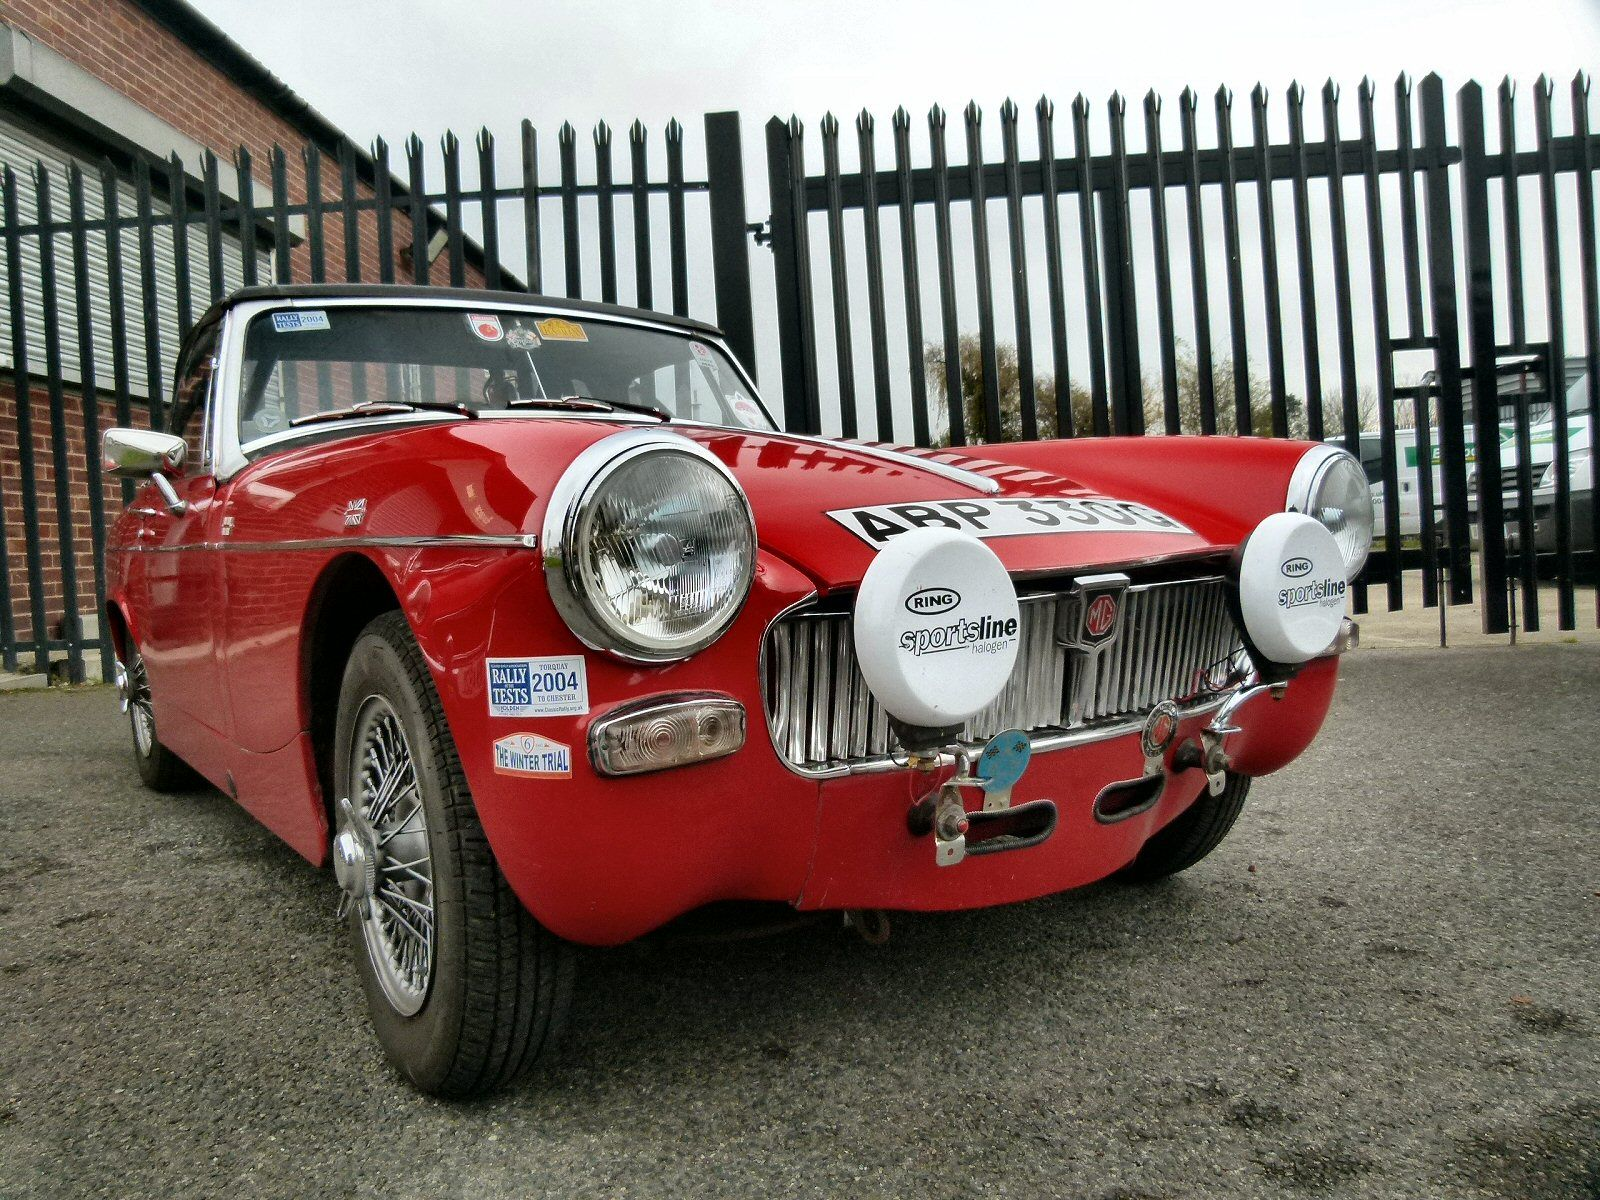 Not take mg midget rally car matchless